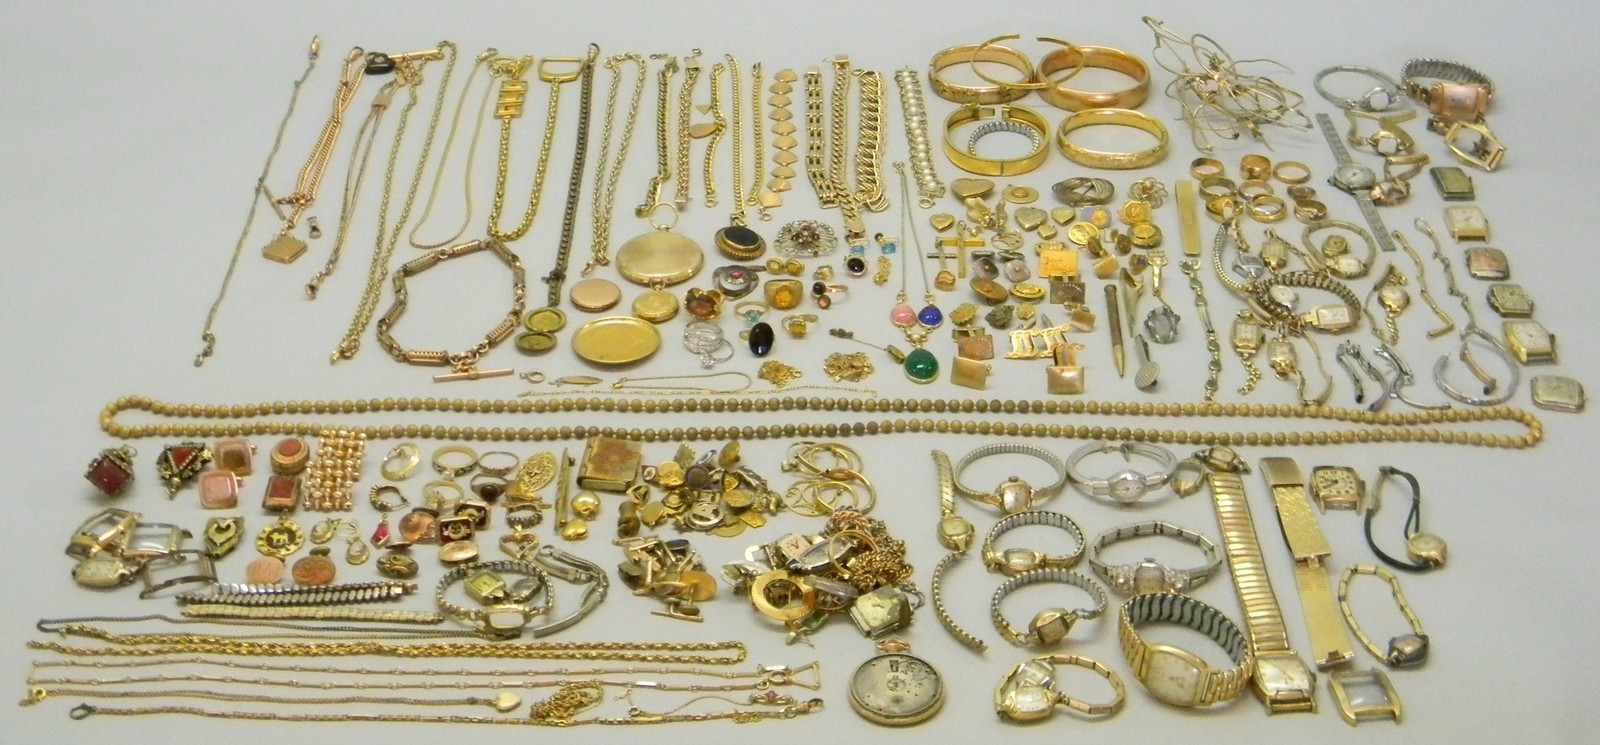 how to determine resale value of gold jewelry jewellery